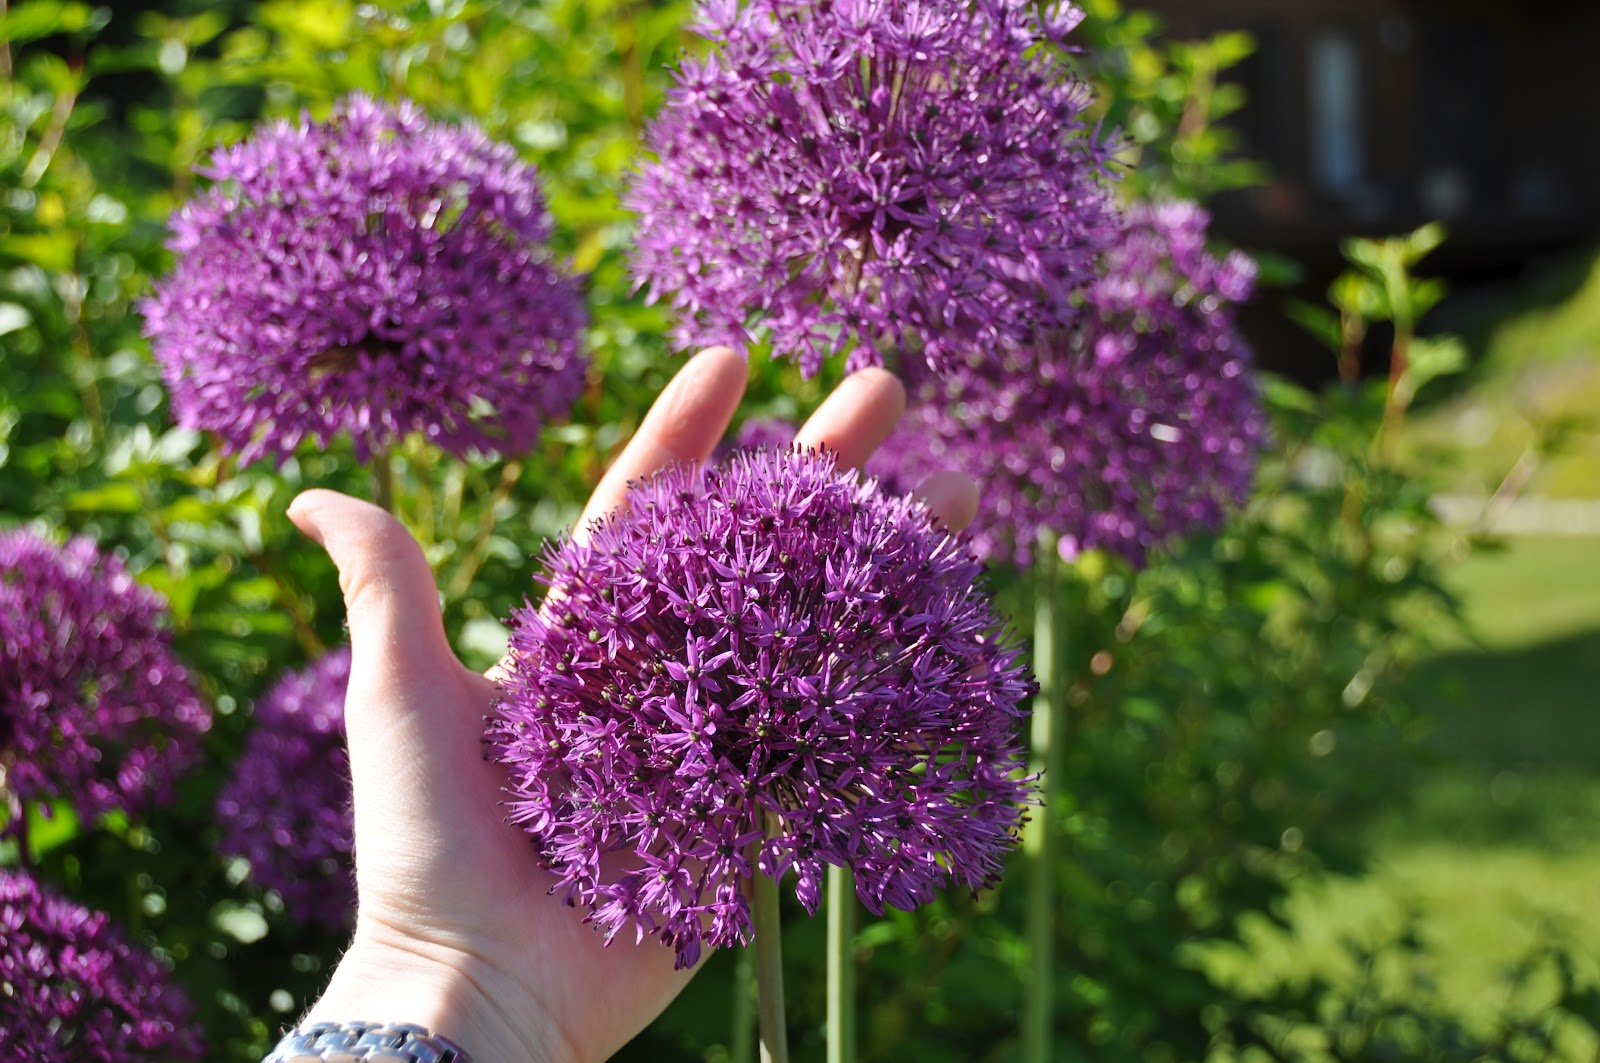 northern exposure gardening awesome alliums the ornamental onions. Black Bedroom Furniture Sets. Home Design Ideas